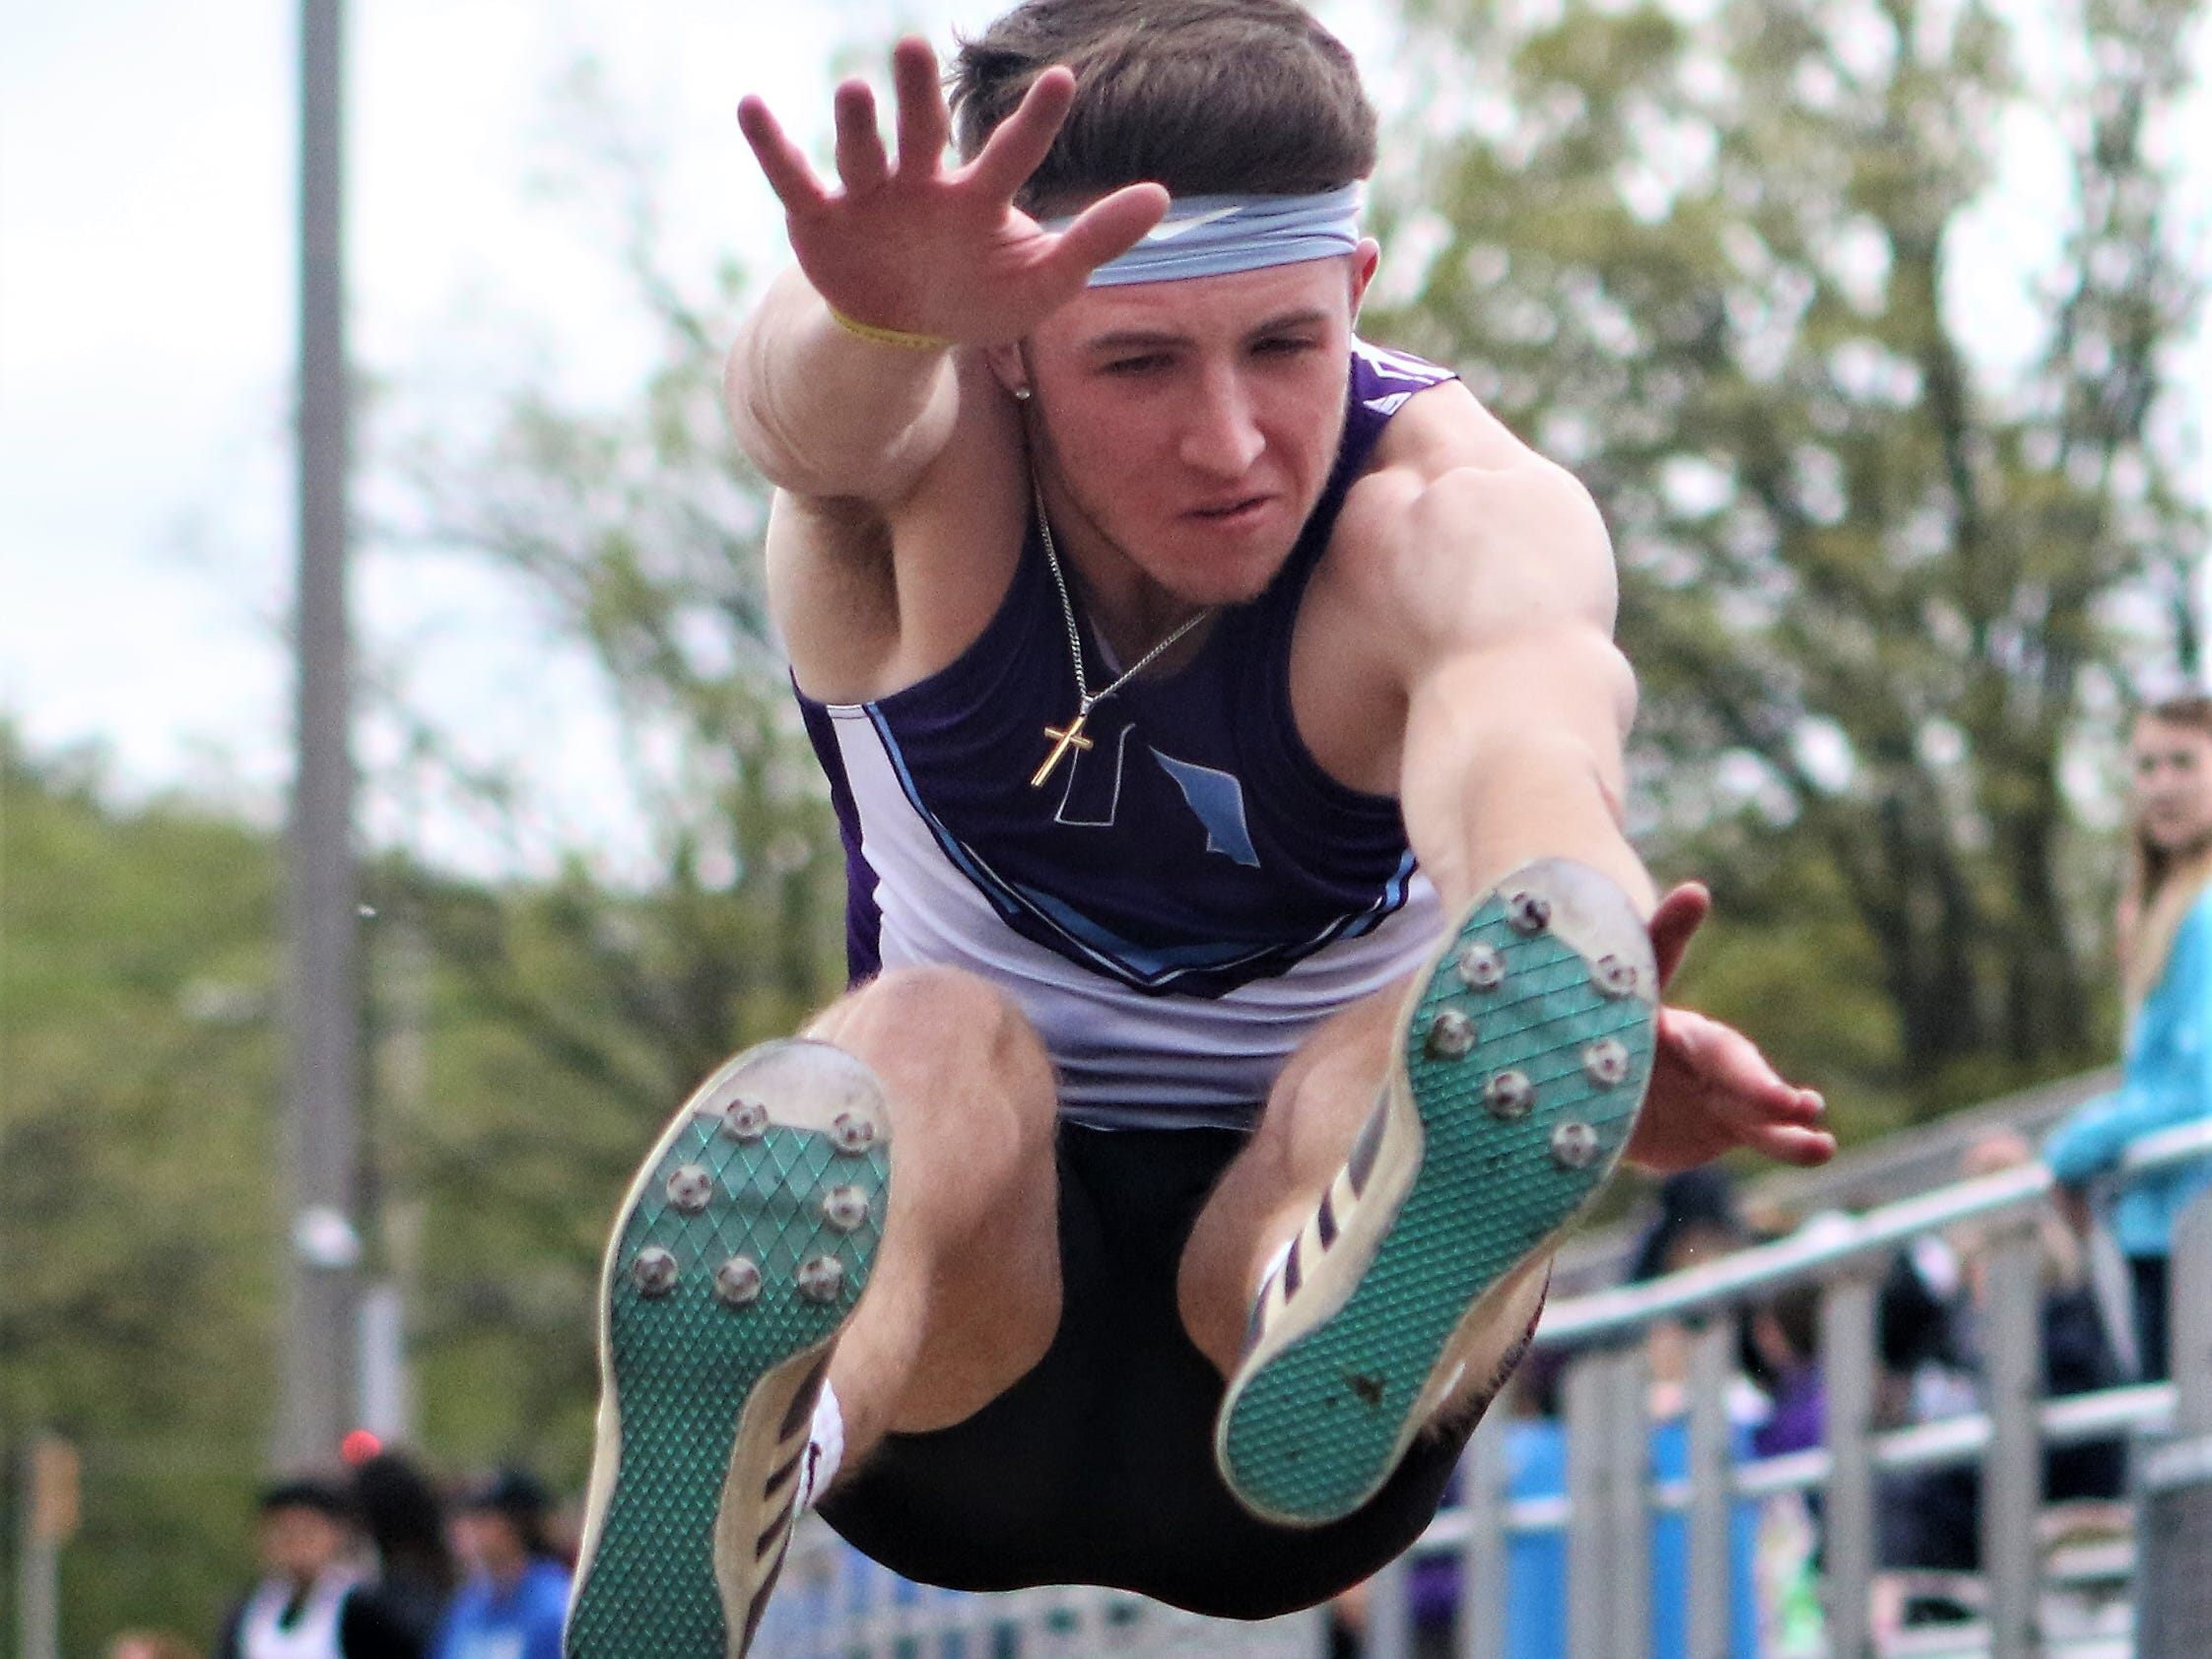 Alex Lesperance of Waukesha North vaults forward during the long jump competition at the Kettle Moraine regional on May 20, 2019.